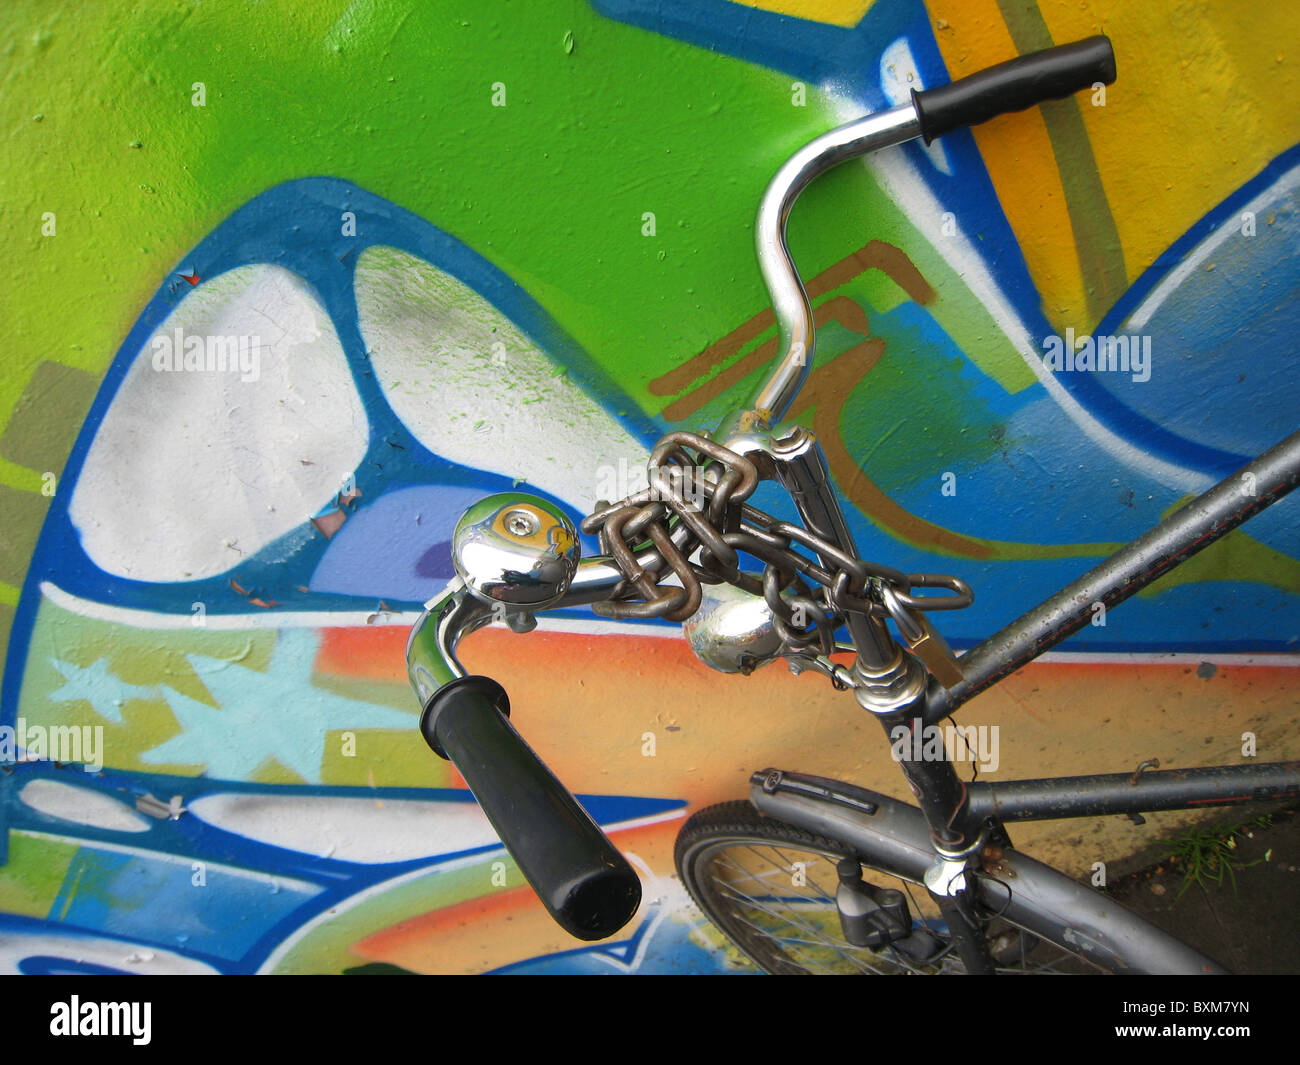 Graffiti wall utrecht - Stock Photo Artistic Graffiti Covered Wall With Bicycle In Utrecht Netherlands